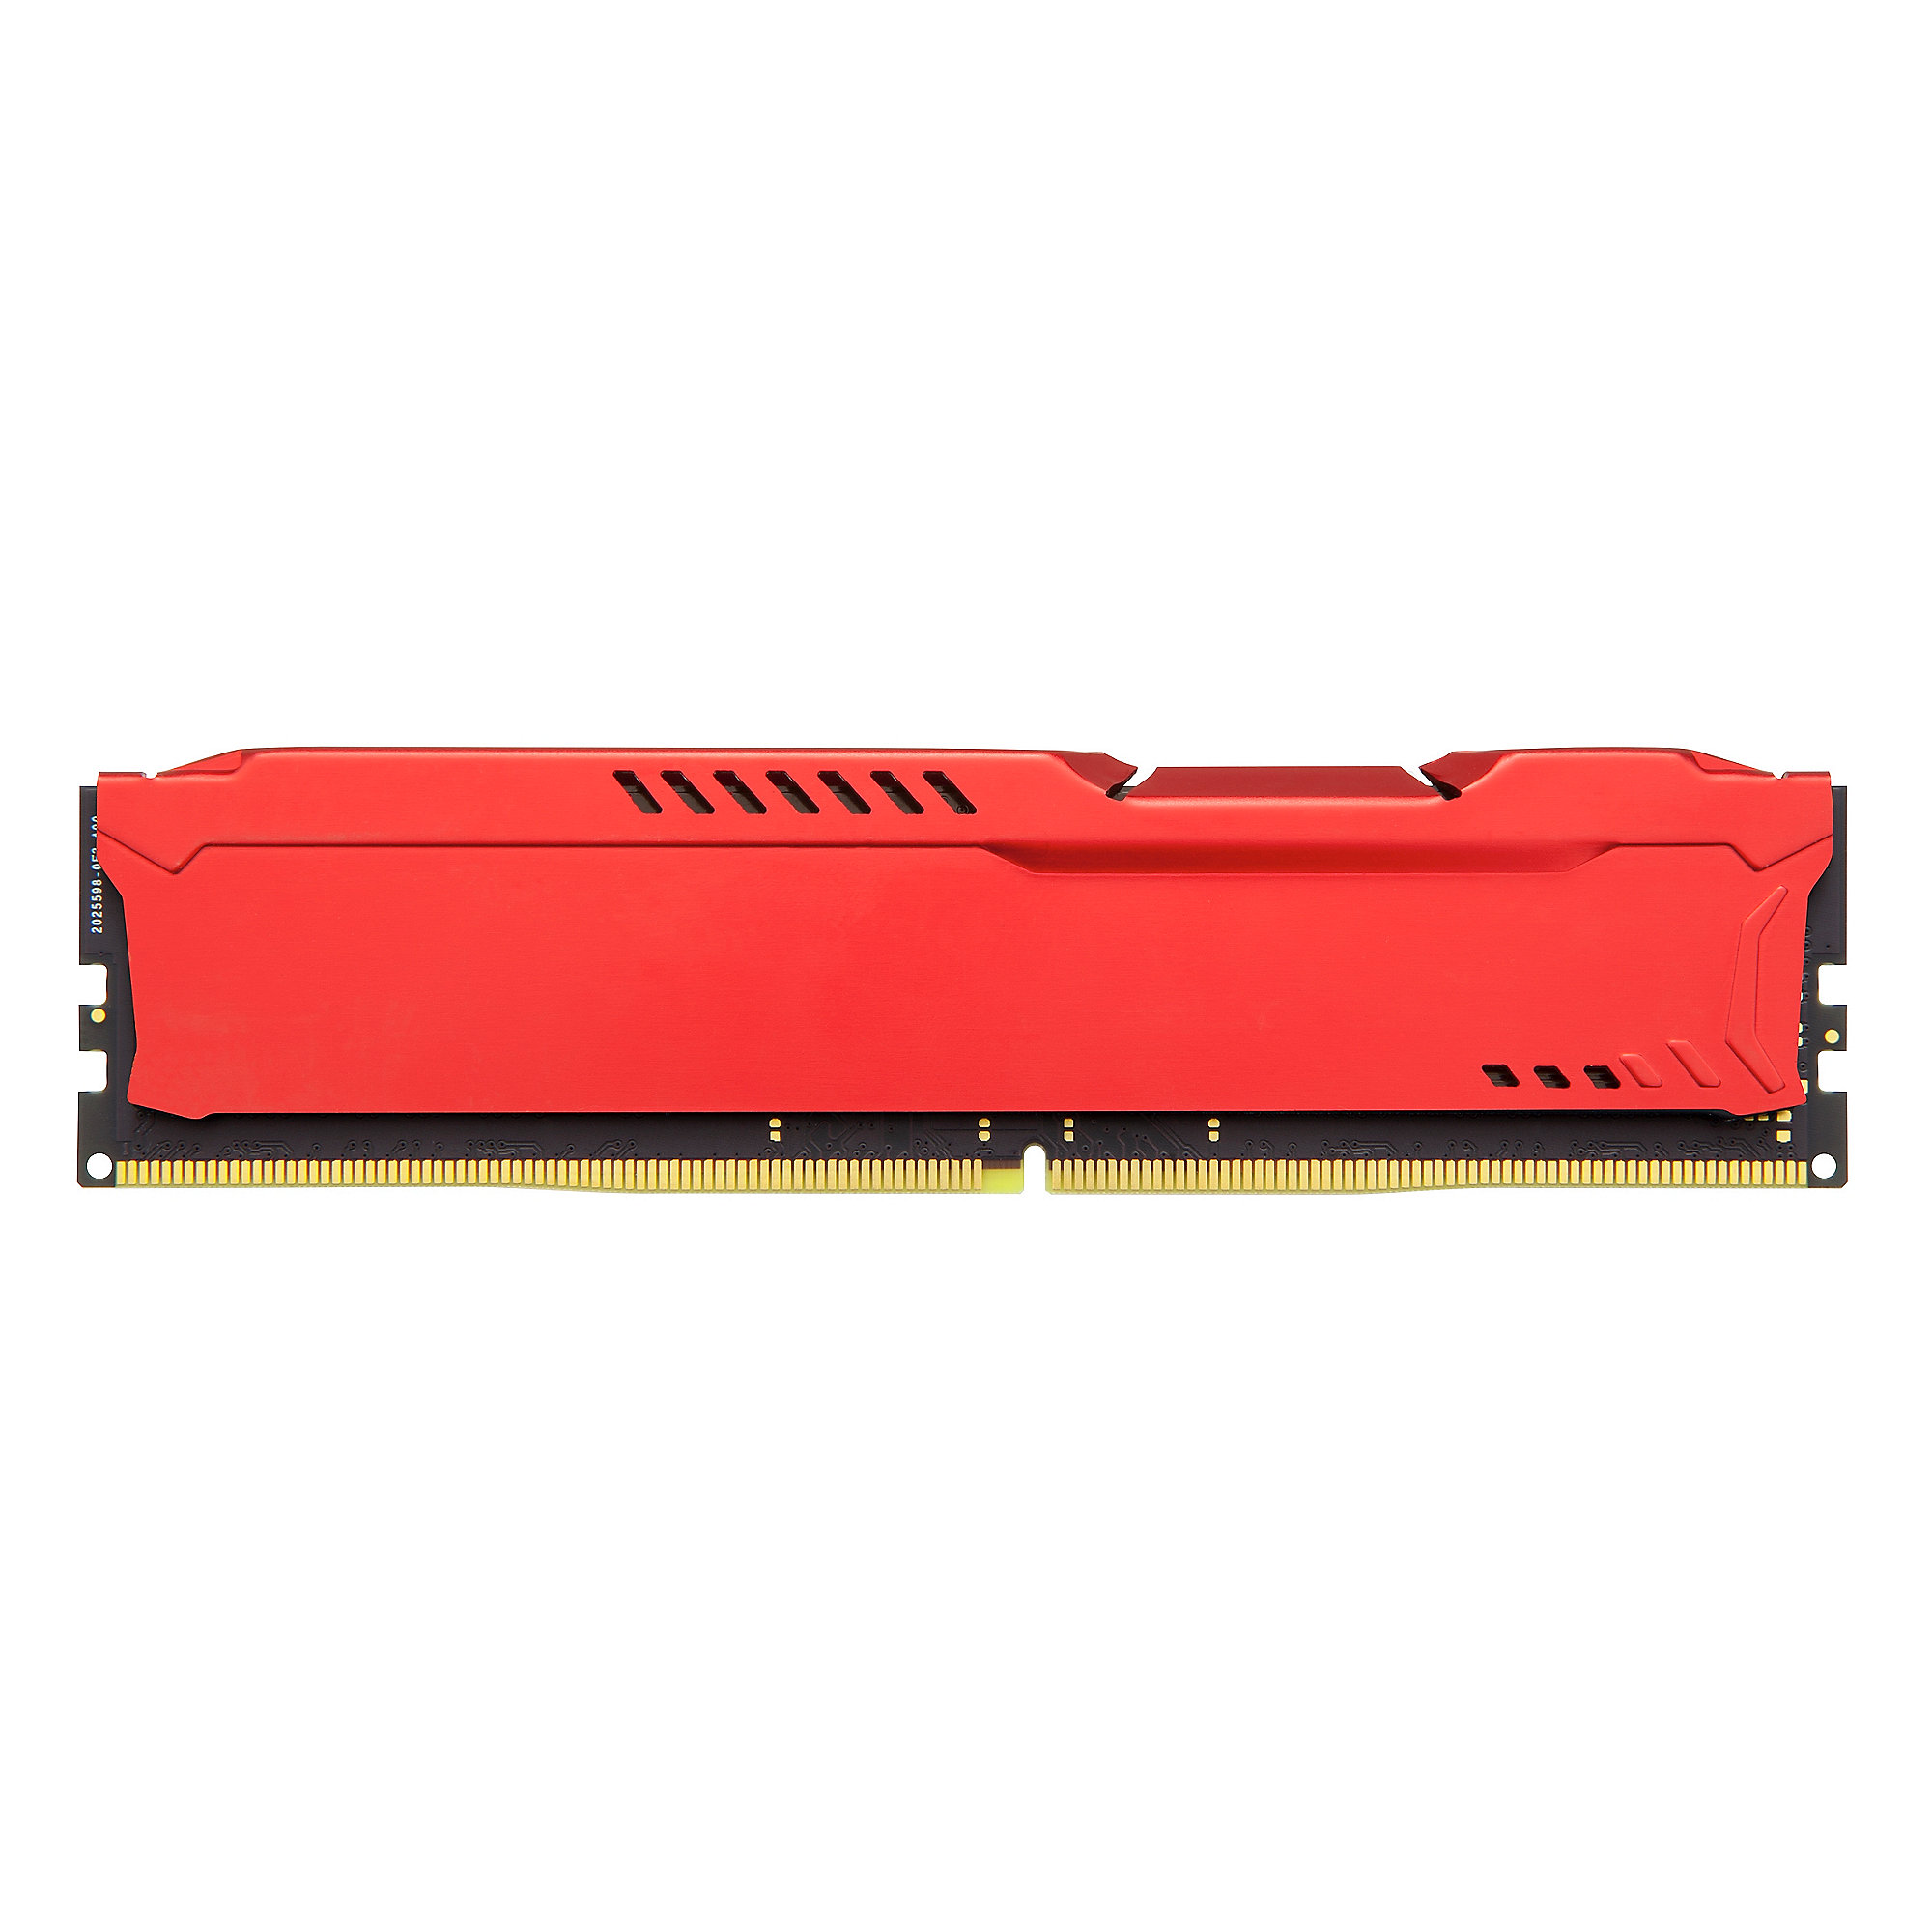 16GB (2x8GB) HyperX Fury rot DDR4-2666 CL16 RAM Kit